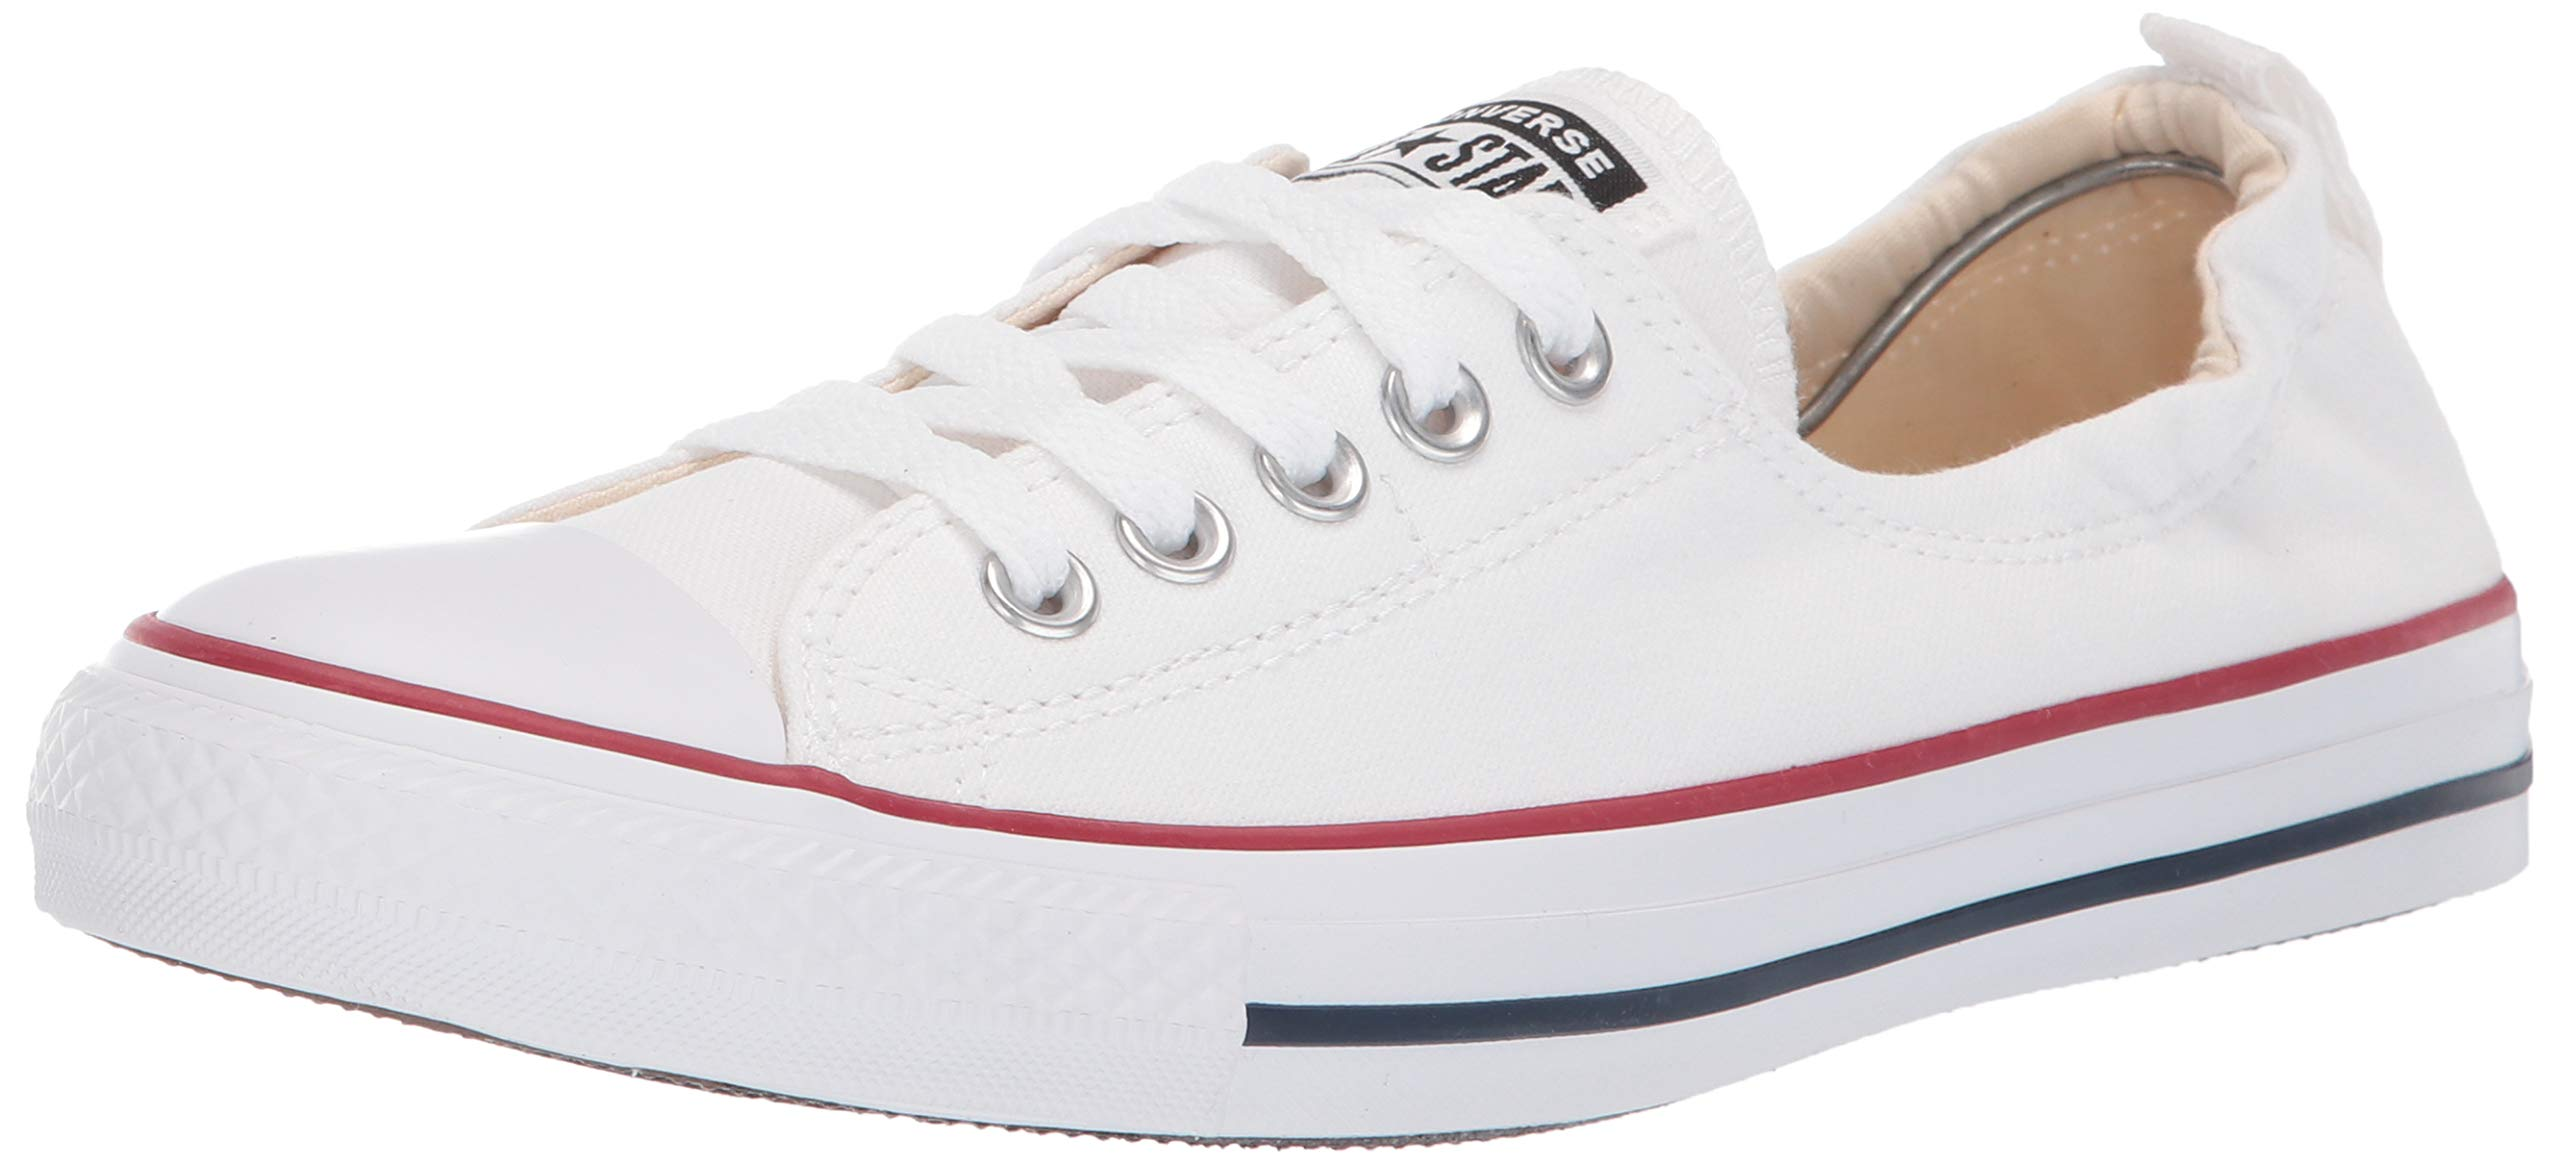 Converse Chuck Taylor All Star Shoreline White Lace-Up Sneaker - 10 B(M) US